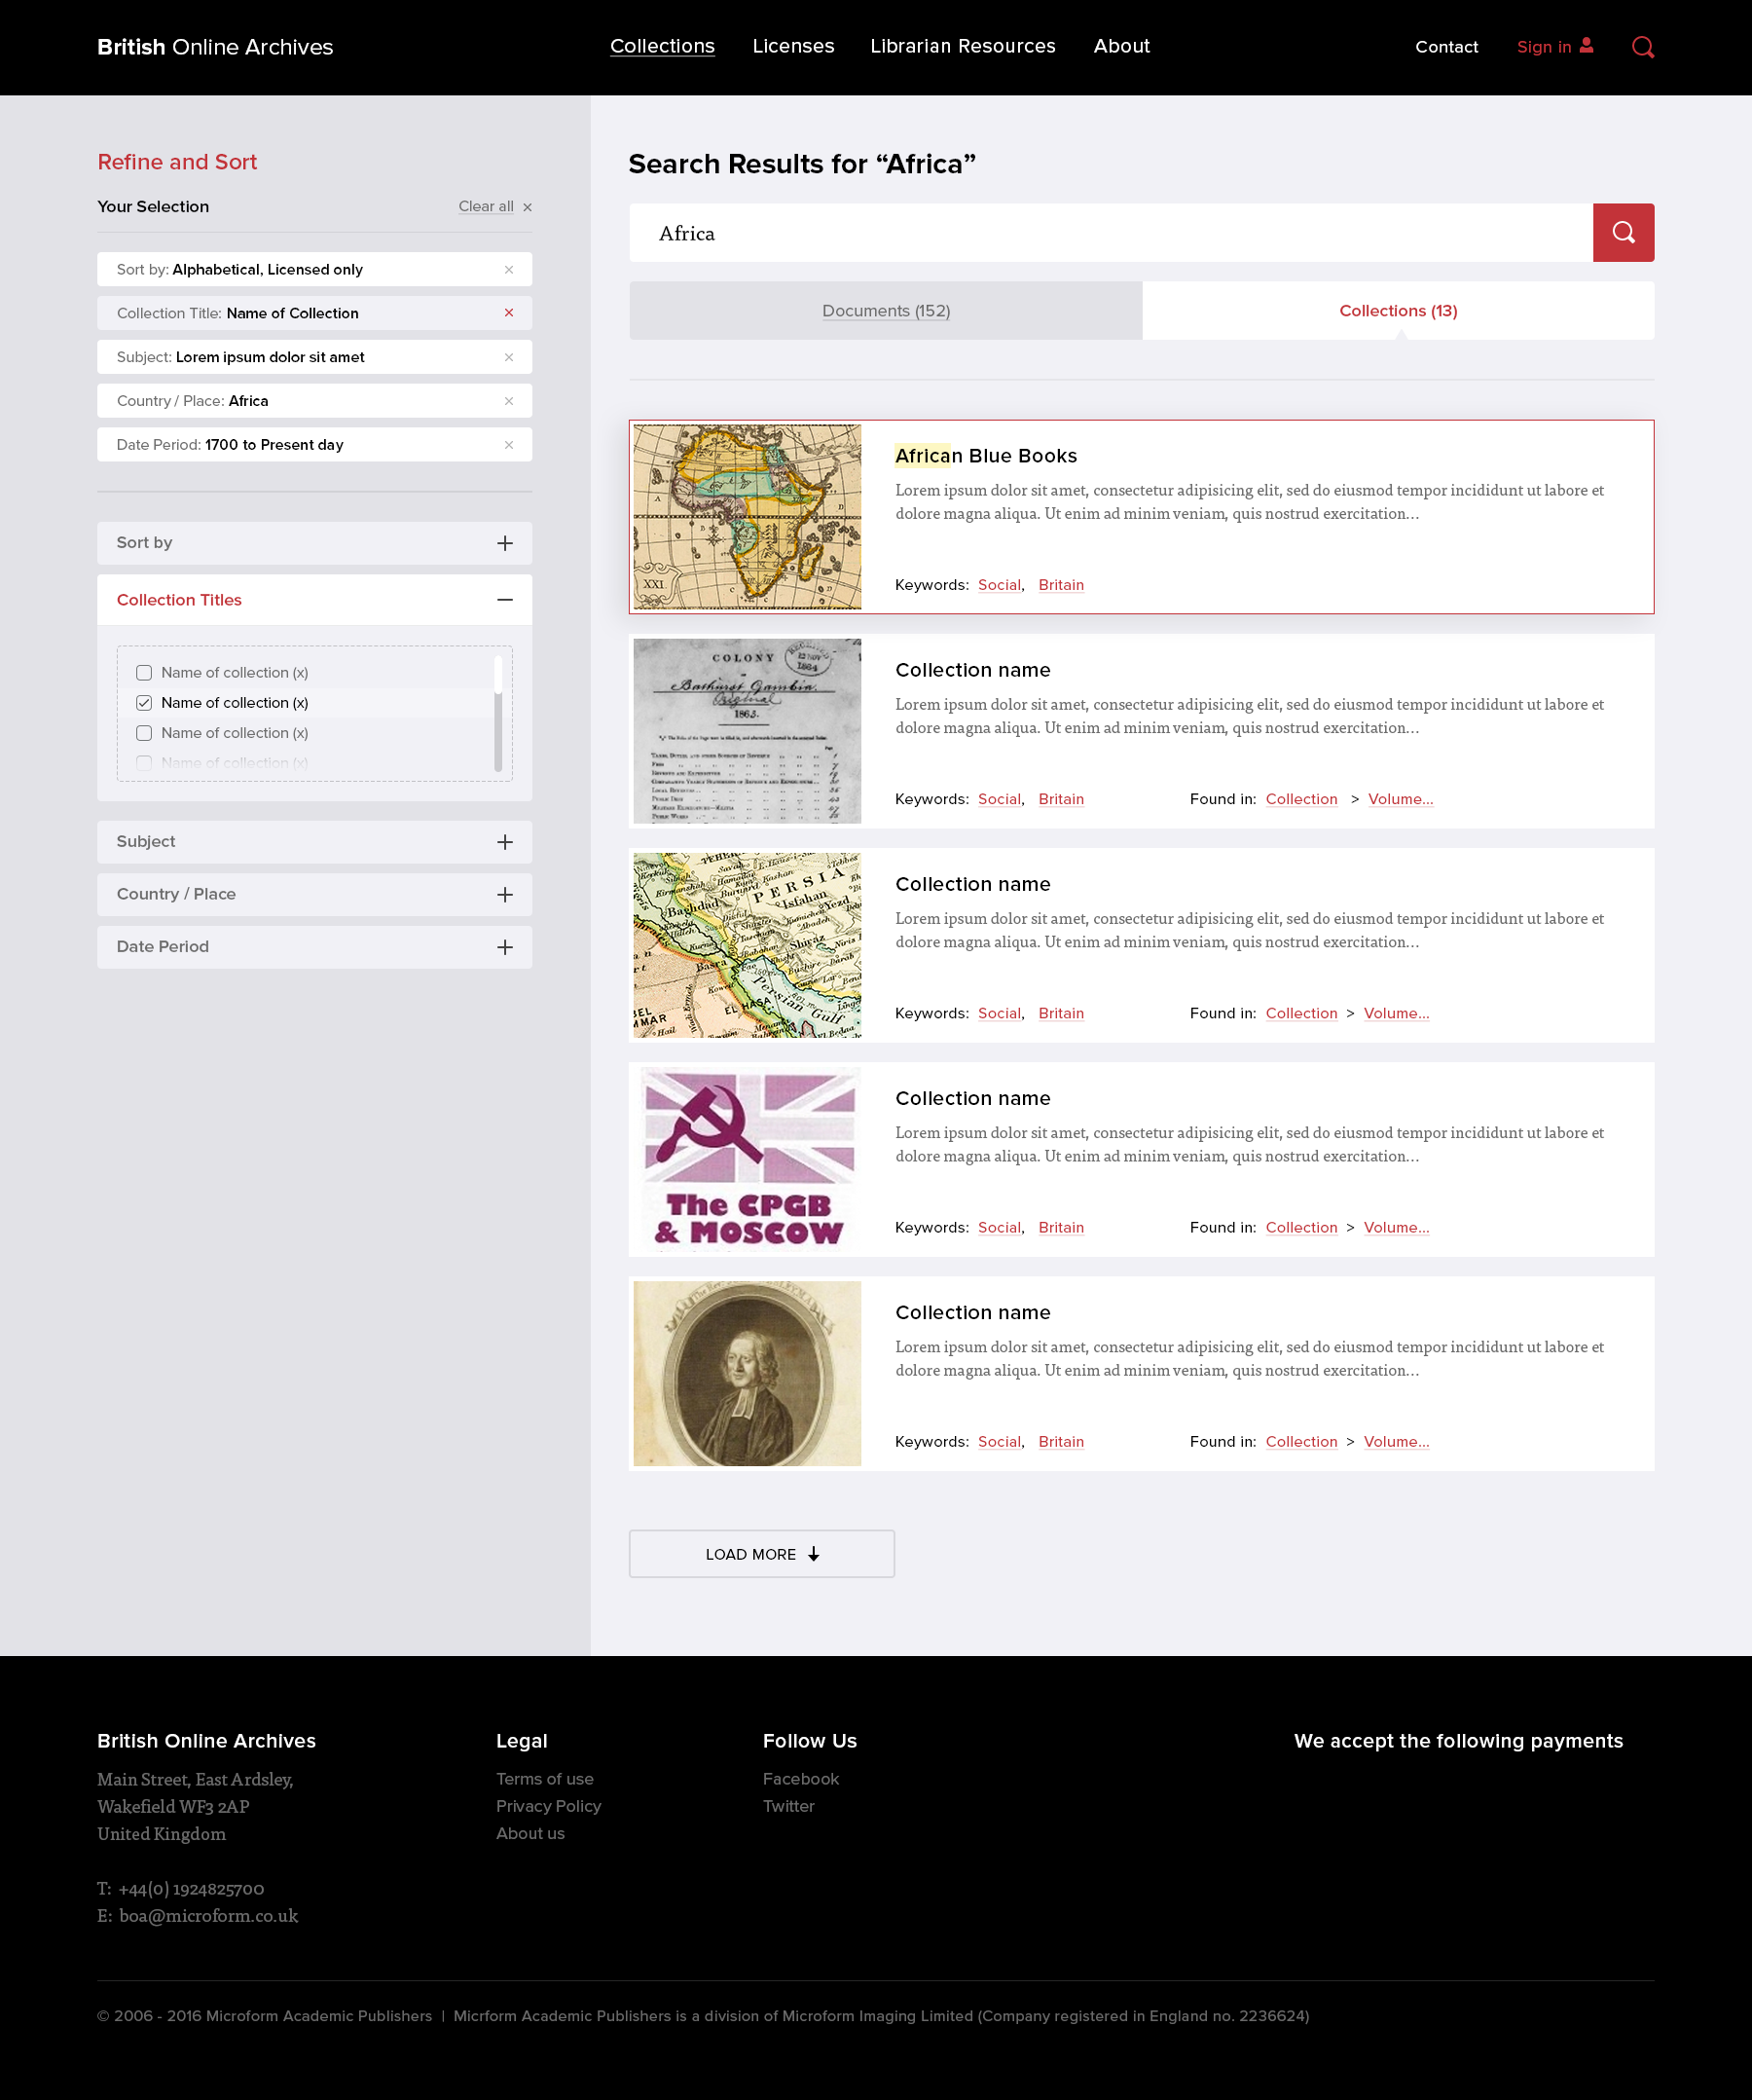 Search results design for the British Online Archives